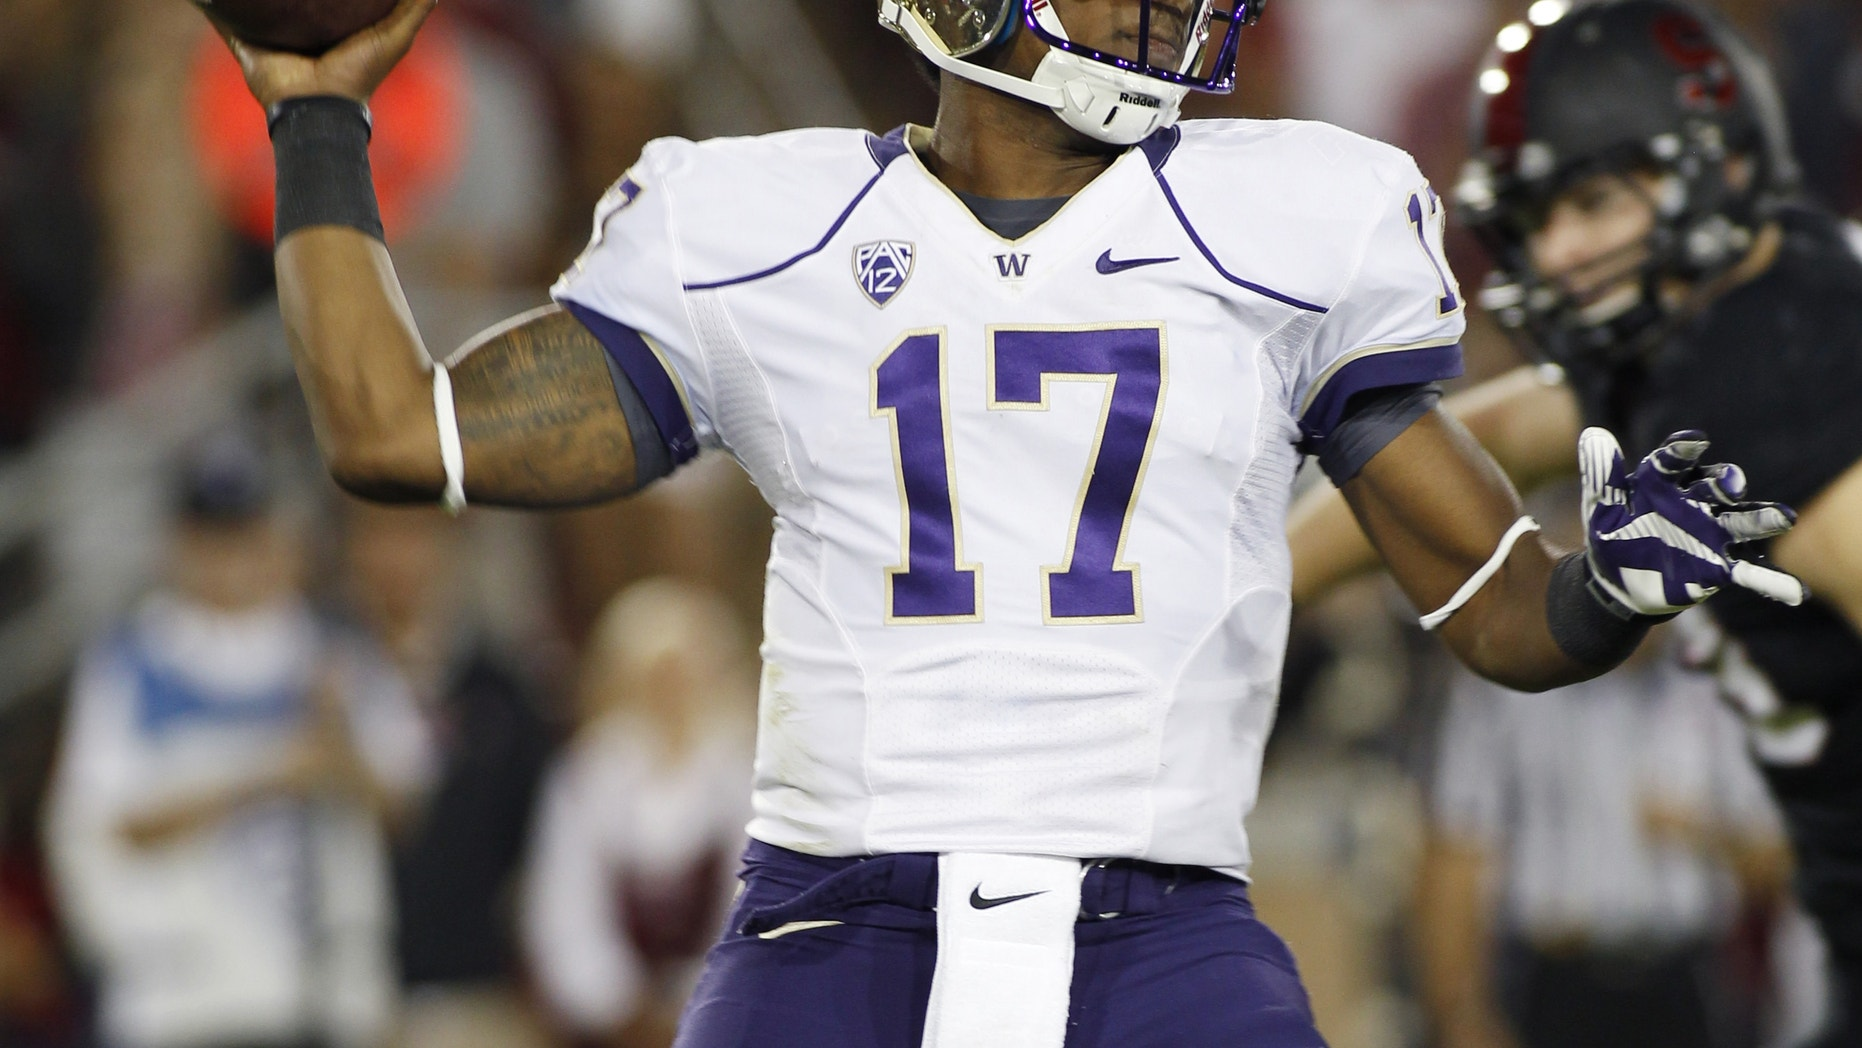 Washington quarterback Keith Price throws a pass against Stanford during the first half of an NCAA college football game in Stanford, Calif., Saturday, Oct. 5, 2013. (AP Photo/George Nikitin)